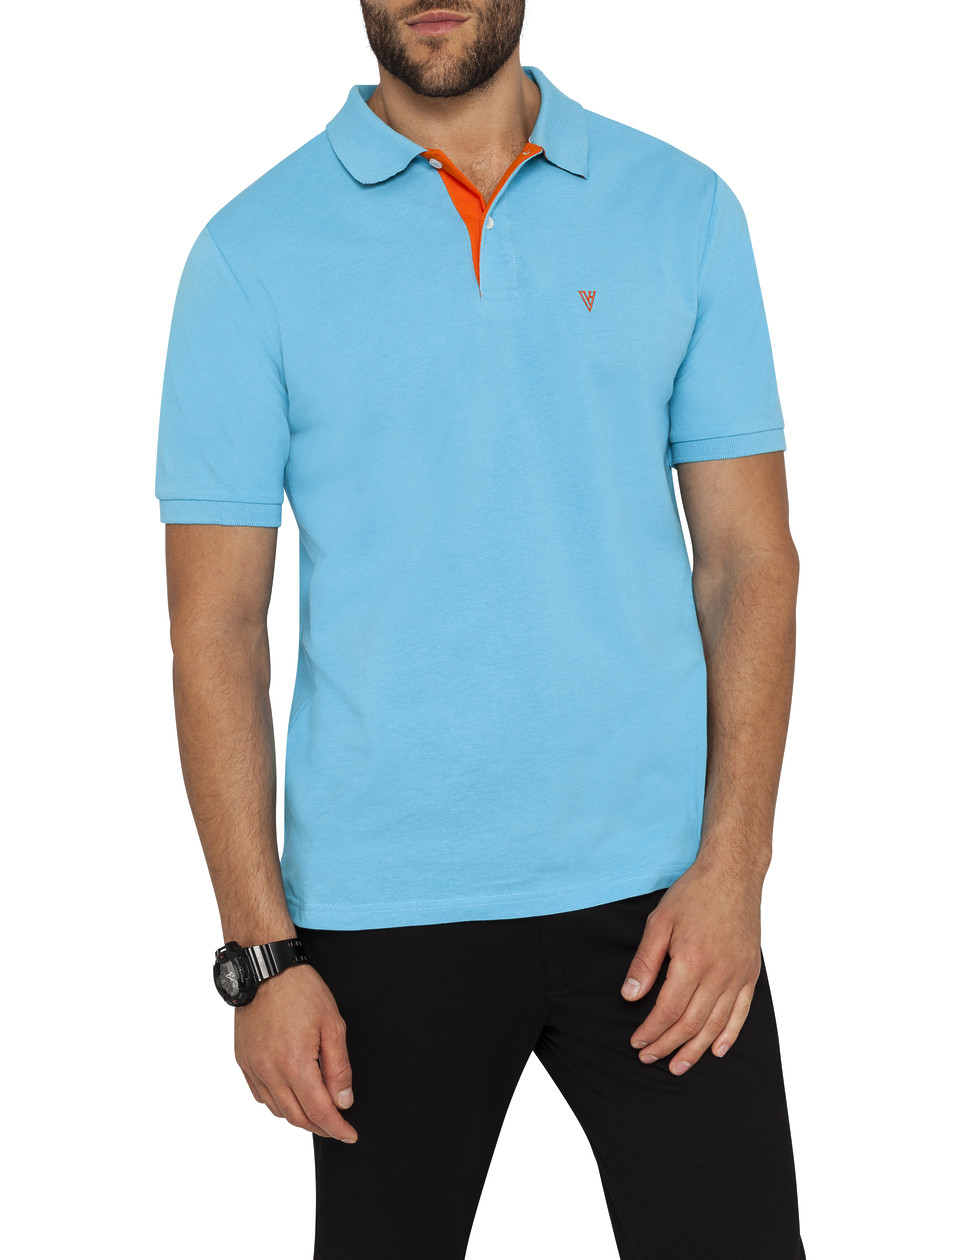 Buy Van Heusen Shirts, Clutch, Belts, Goggles Online in India. Huge range of Apparel, Accessories, Bag at cbbhreview.ml free shipping* 15 days Return Cash on Delivery.